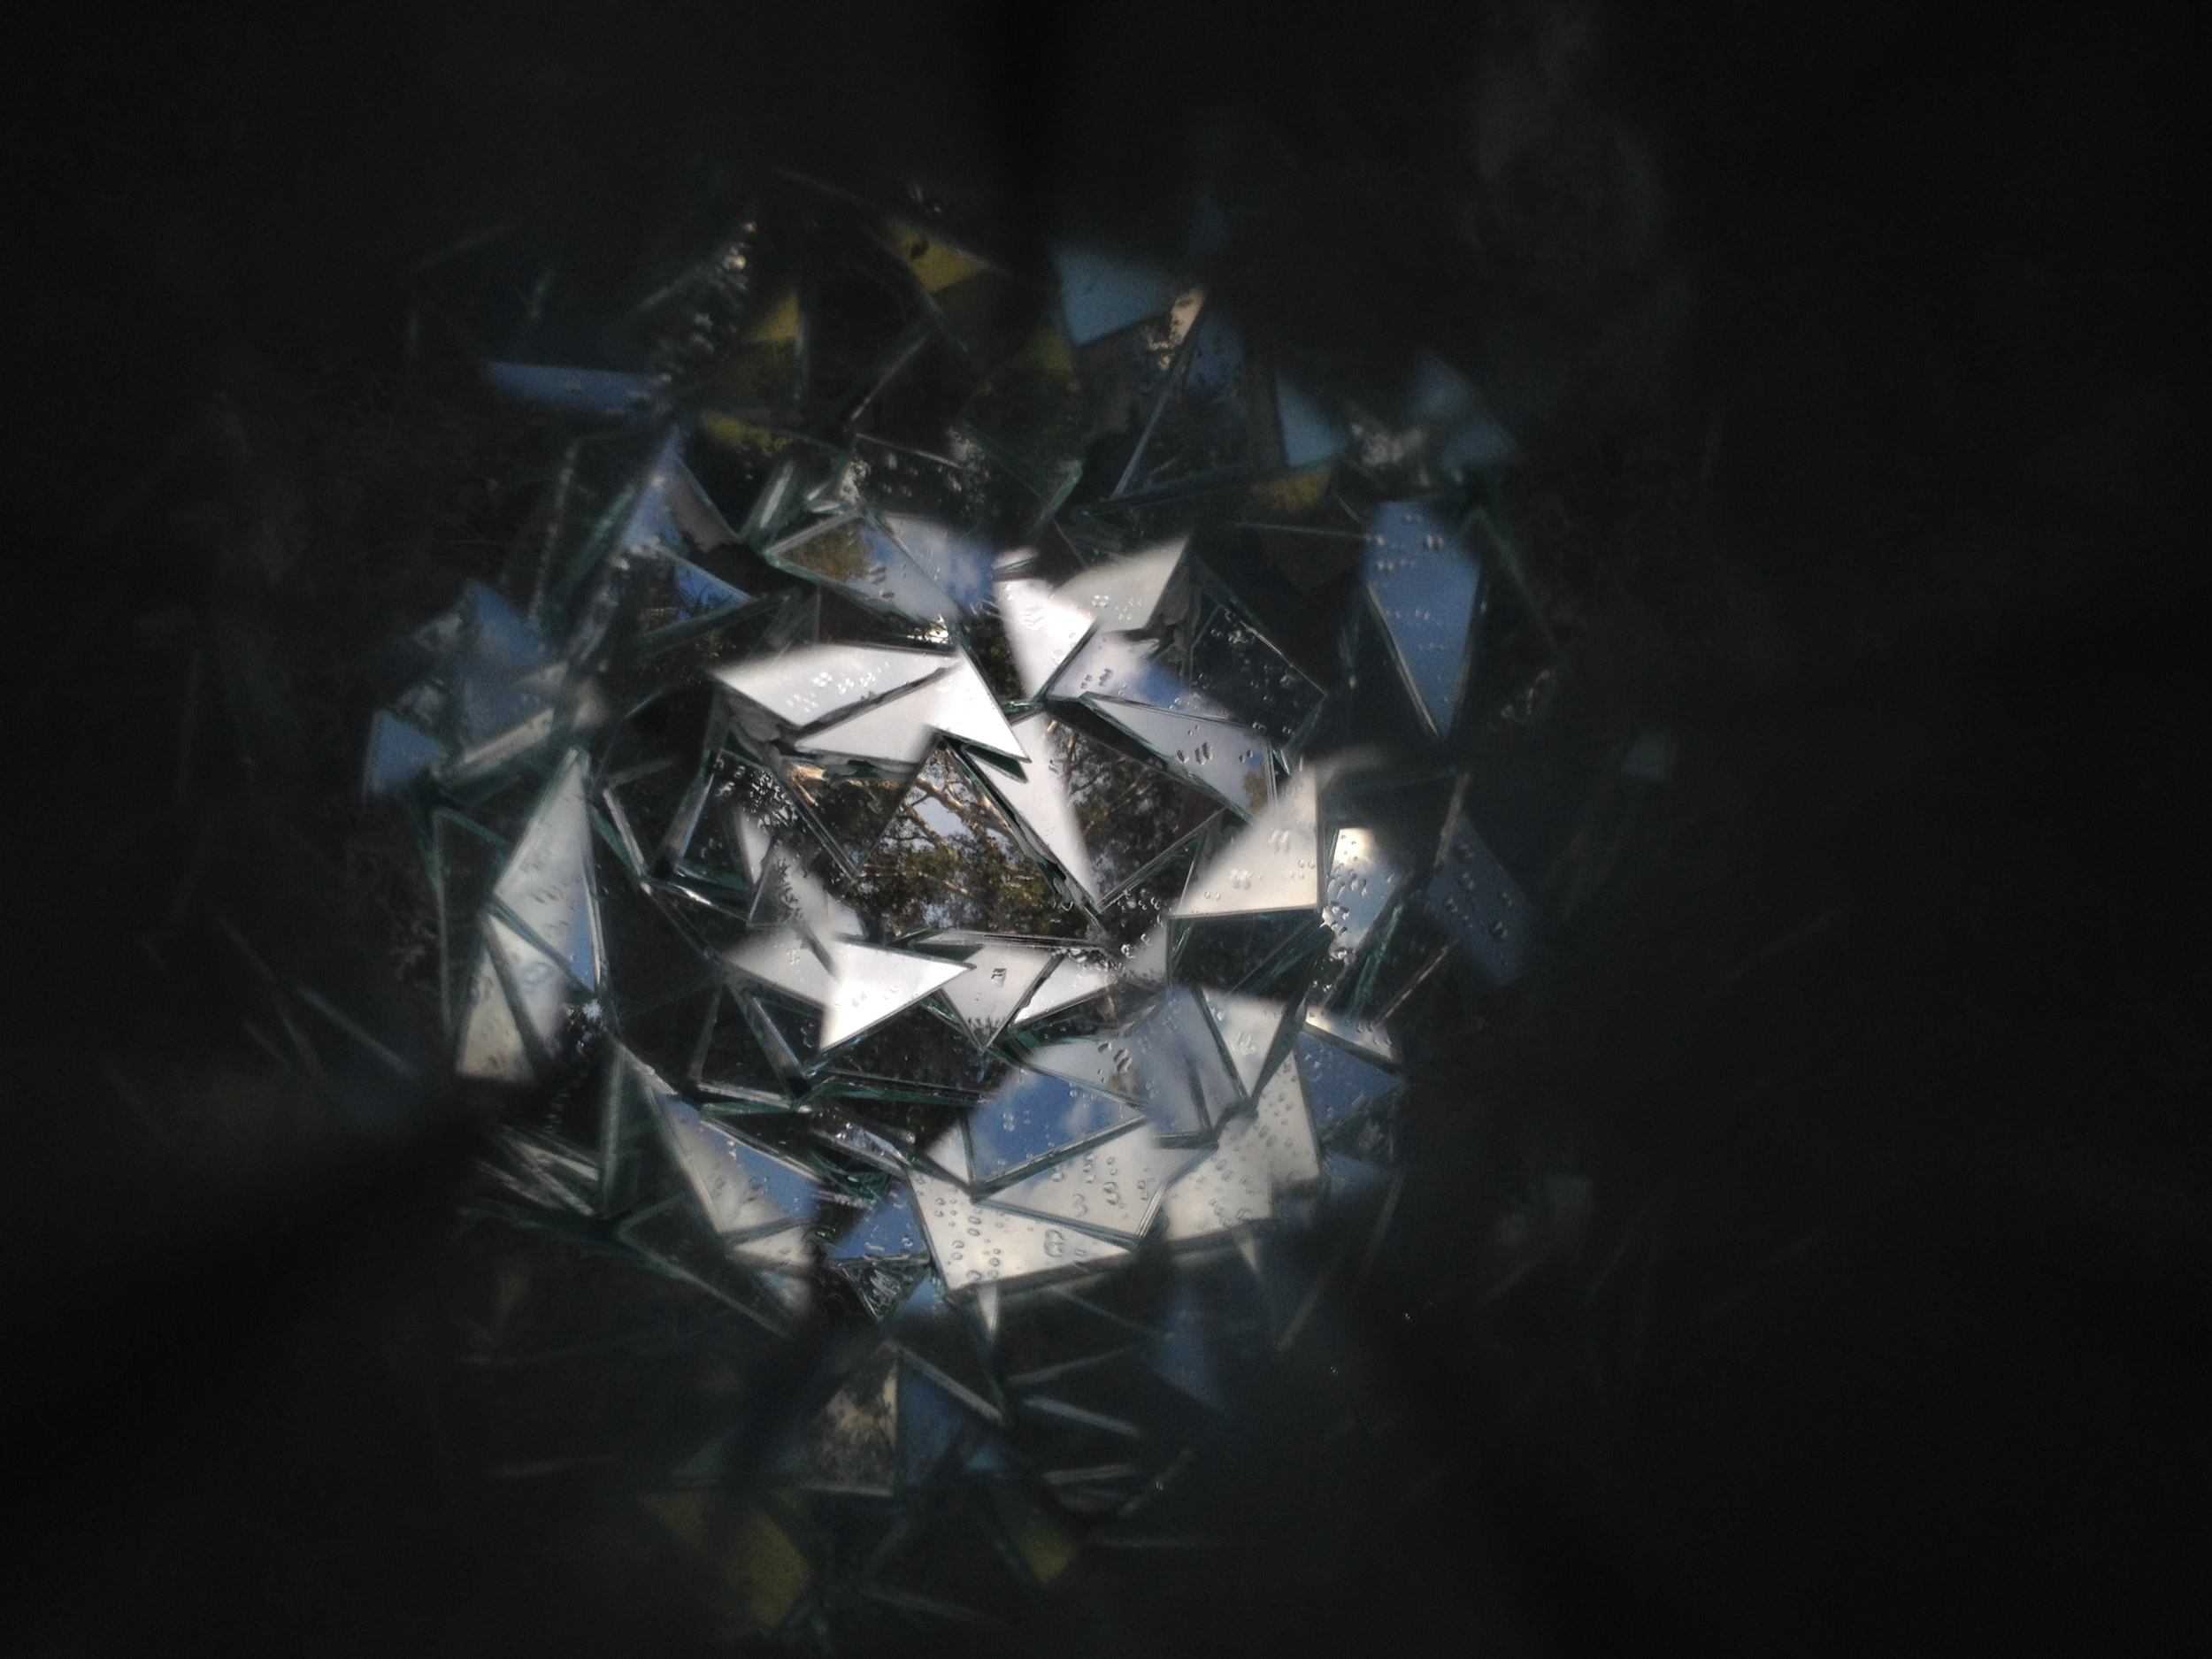 Collaboration experiments with Heidi Kenyon's handmade kaleidoscope